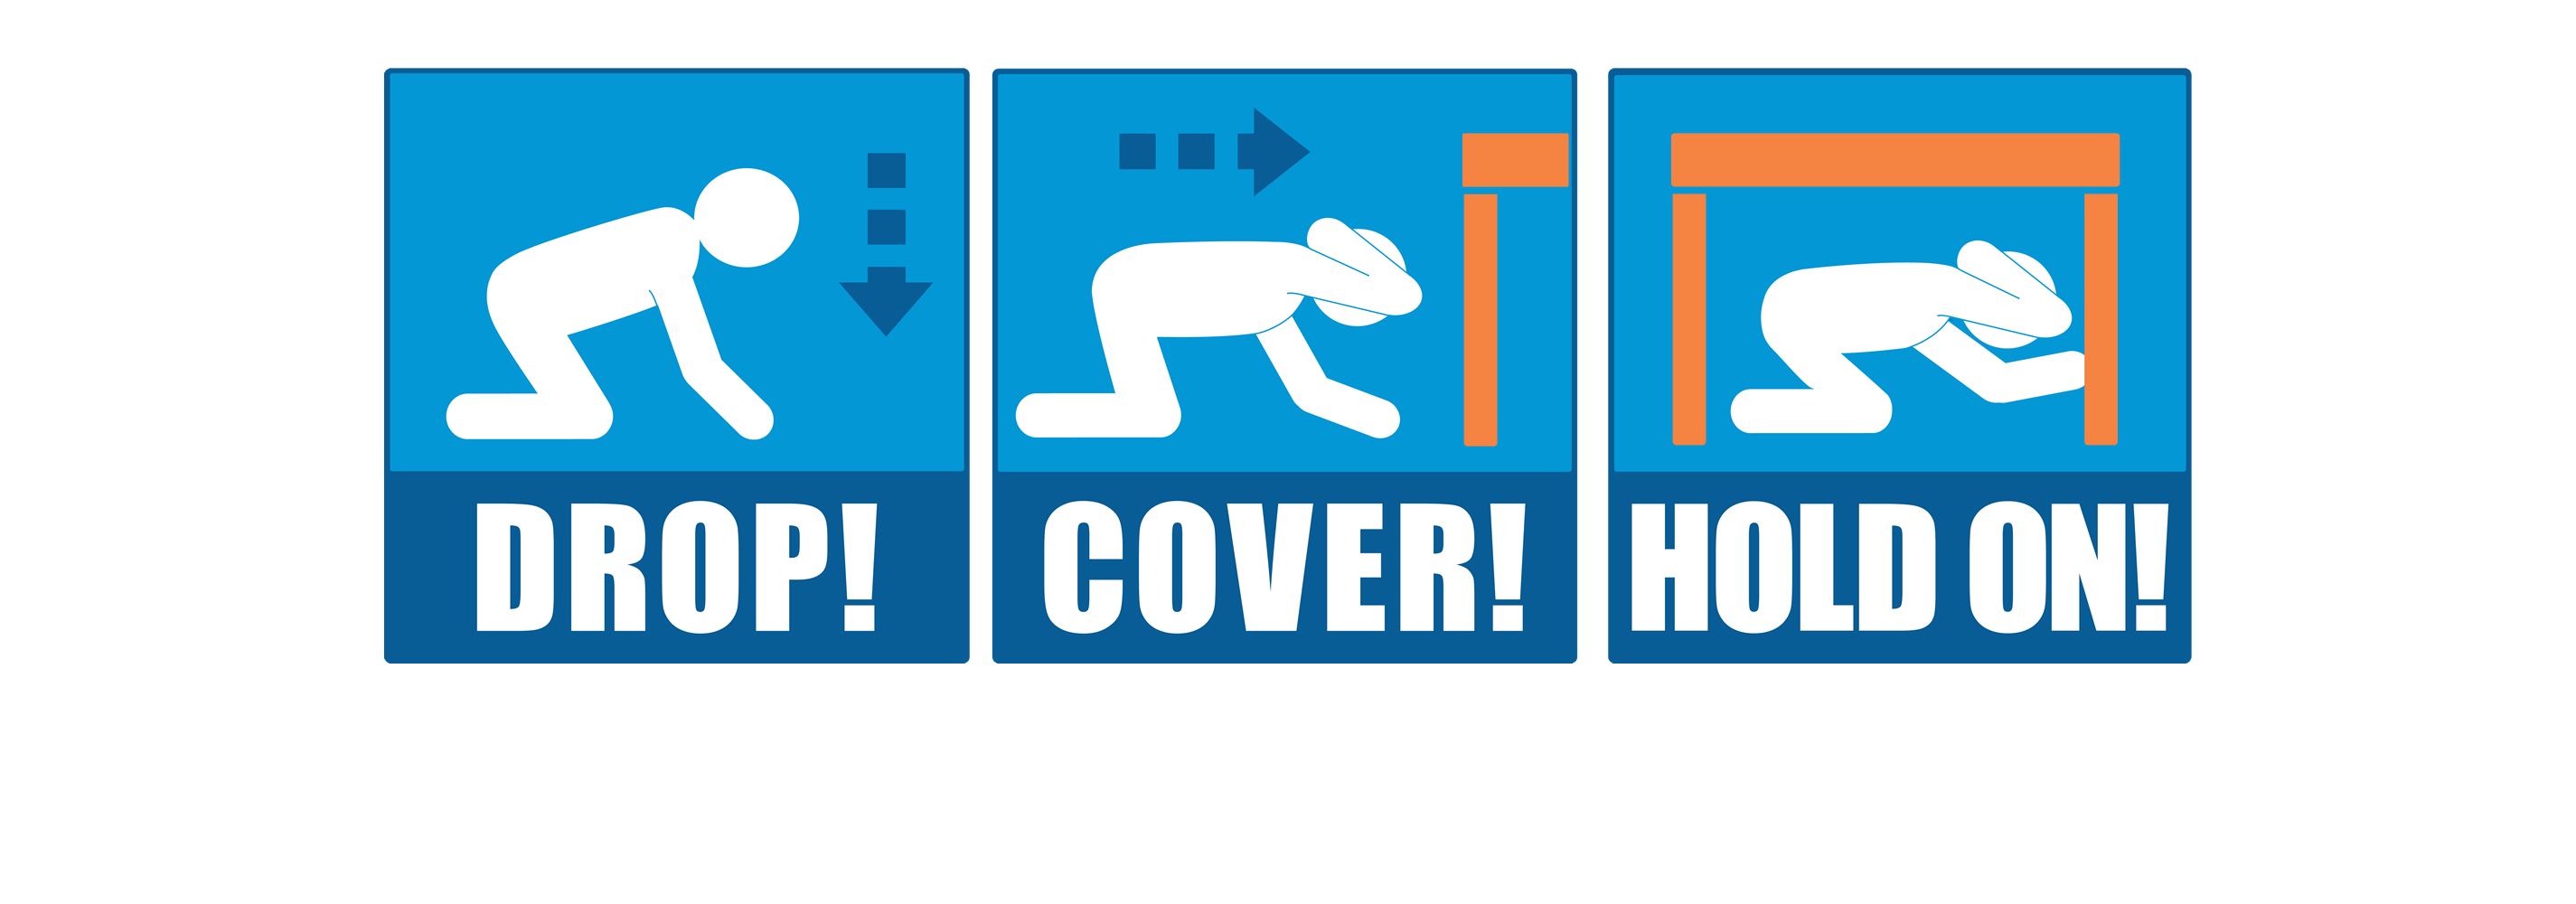 Great ShakeOut Earthquake Drills are set for Oct. 19…